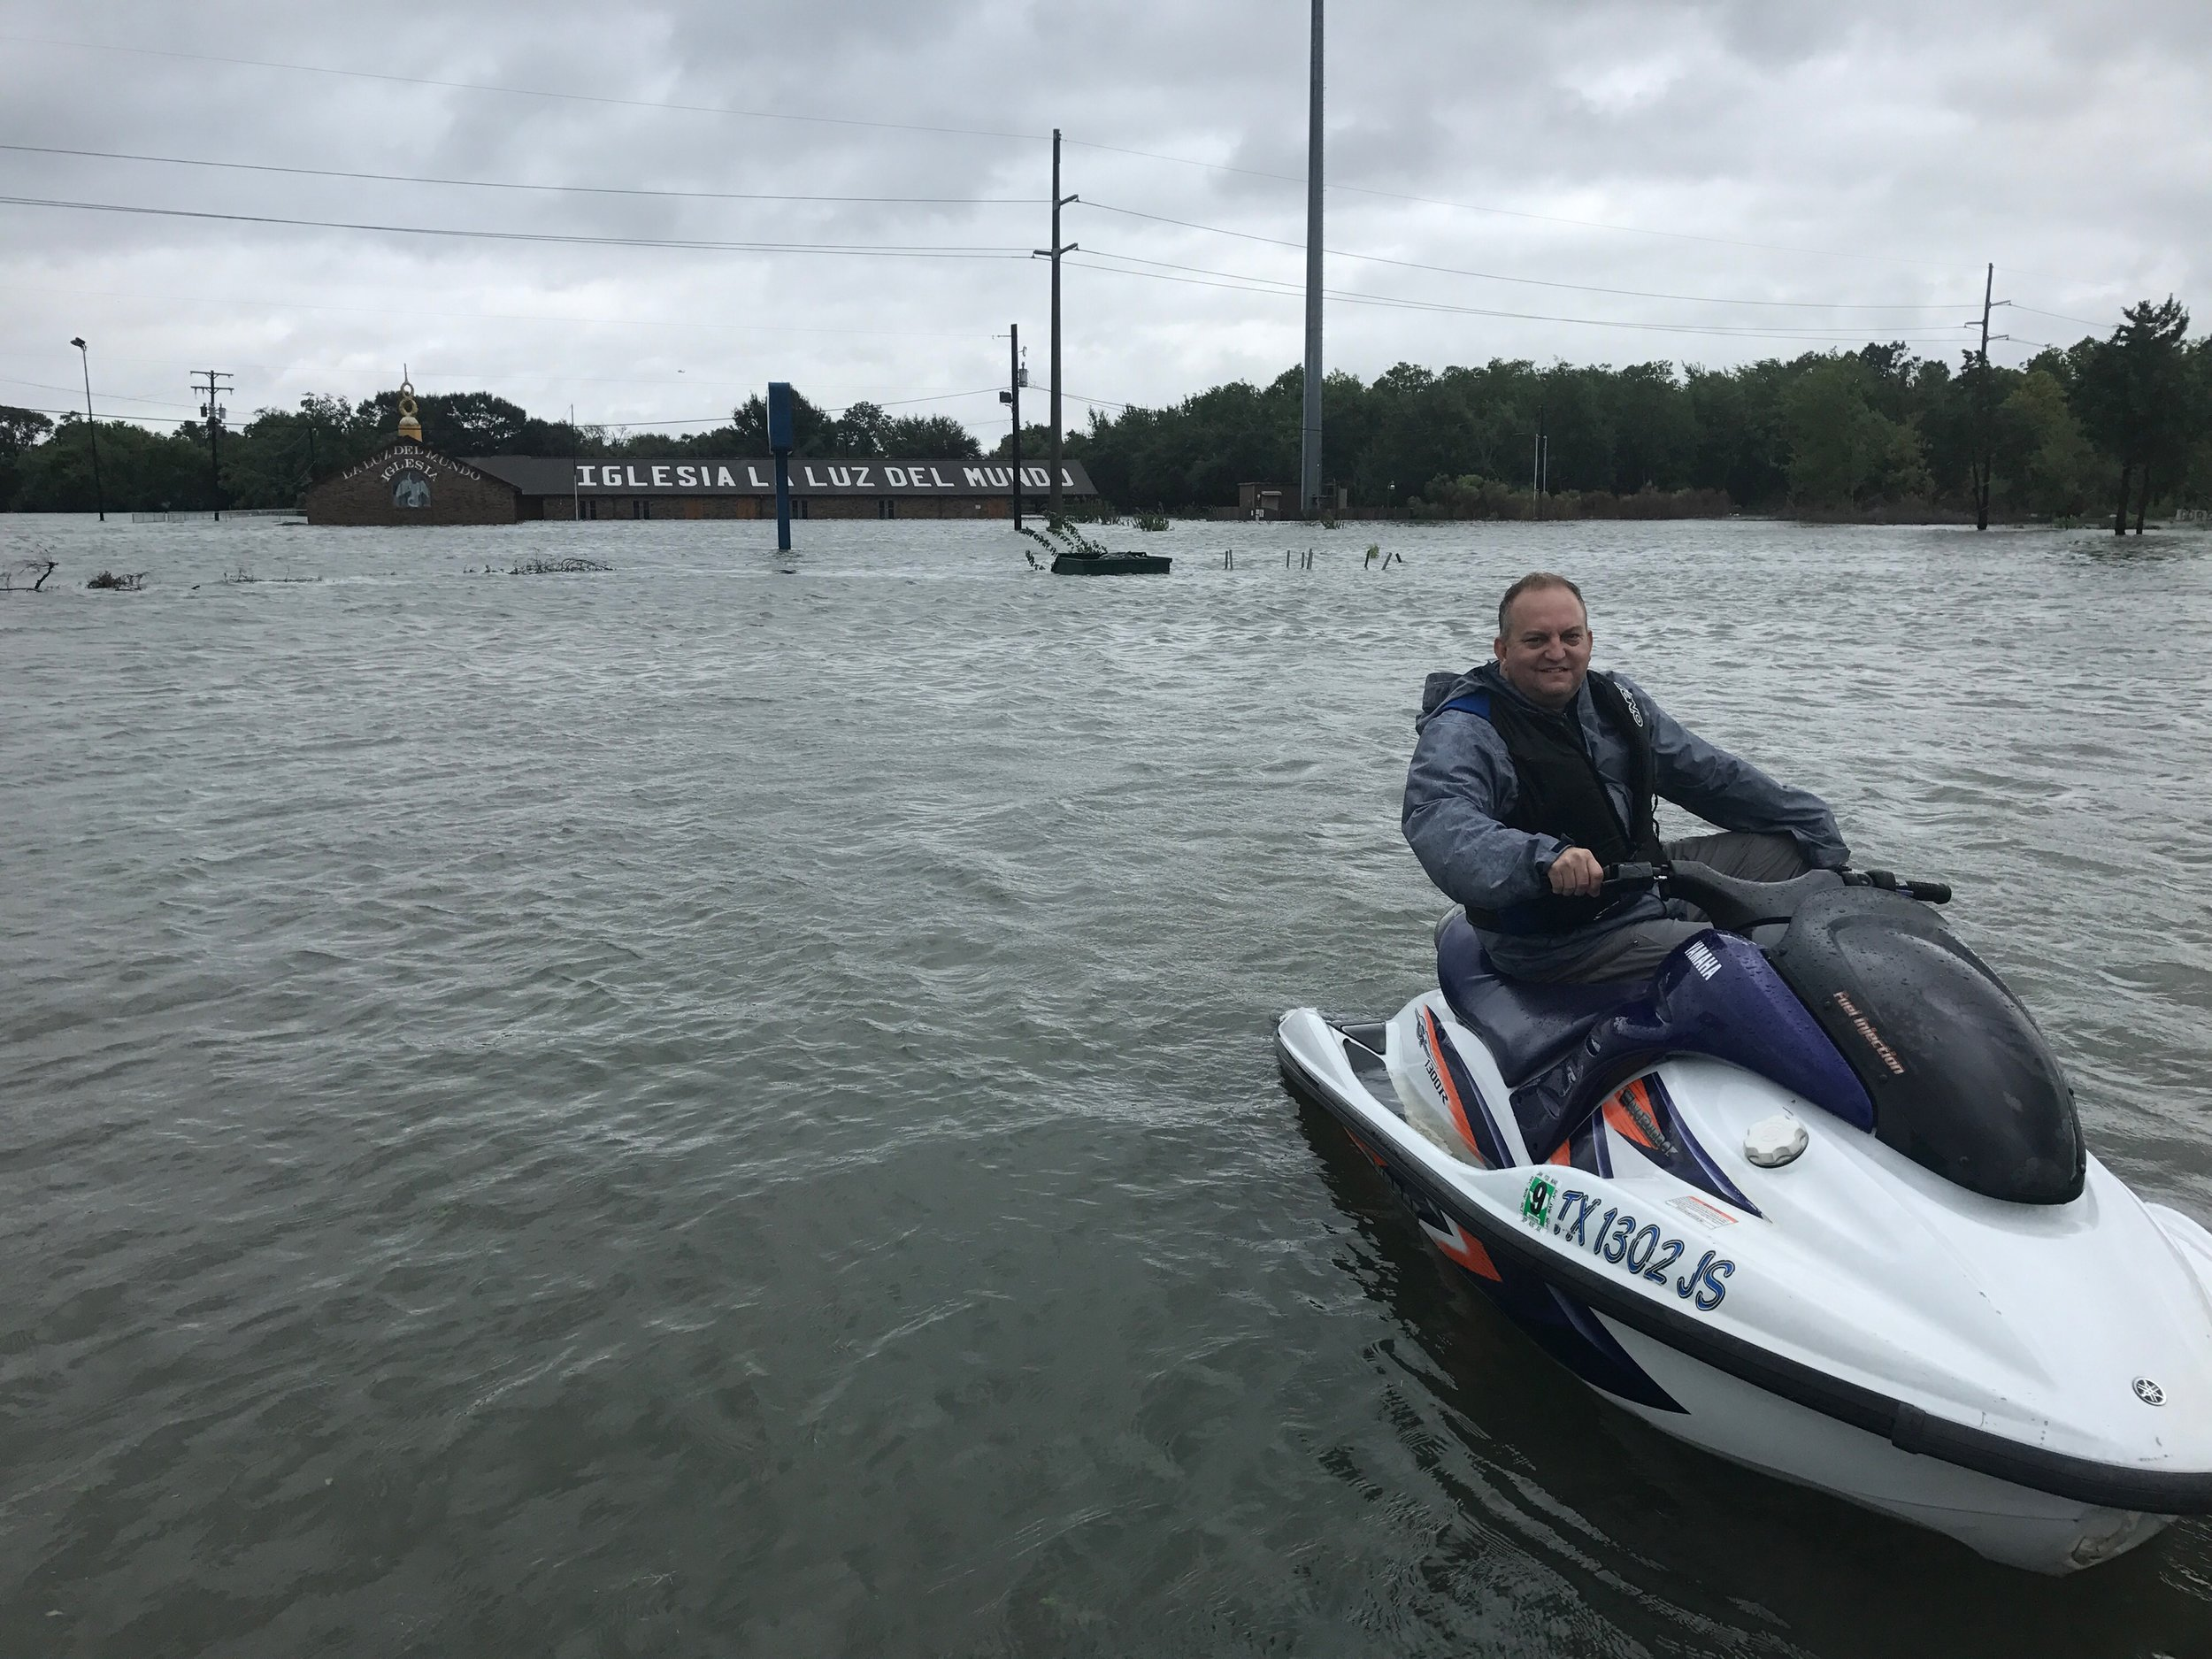 Gary Miars, riding a wave runner during rescues in Port Arthur, Texas.